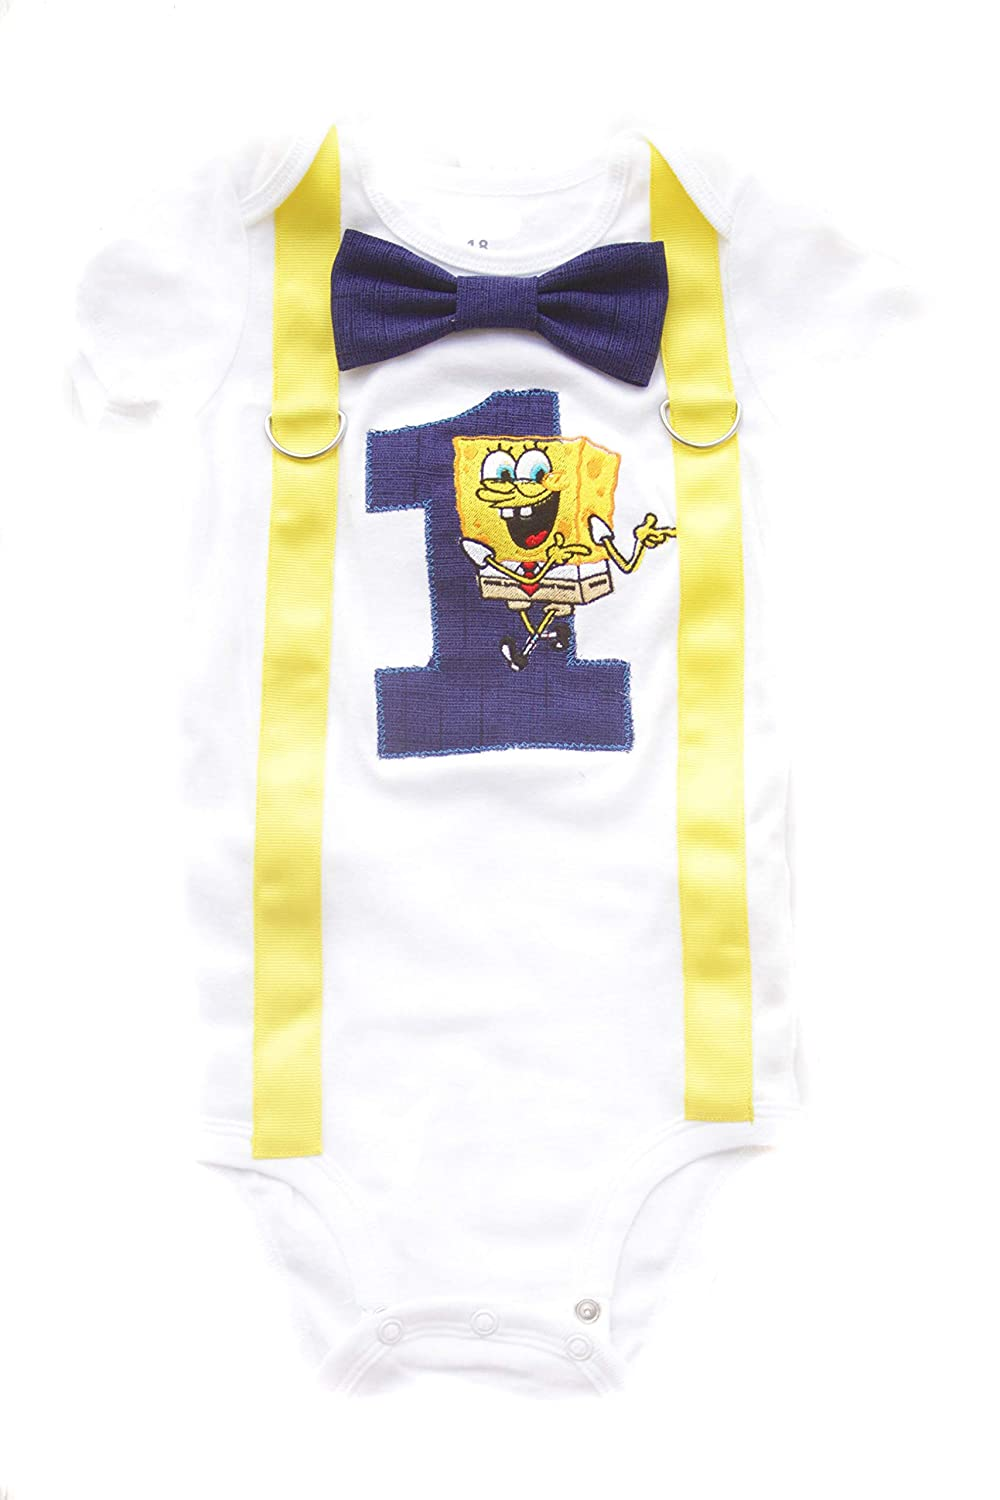 Max 50% OFF Baby At the price of surprise Boy First birthday Cake Outfit- Smash Spongebob pan square